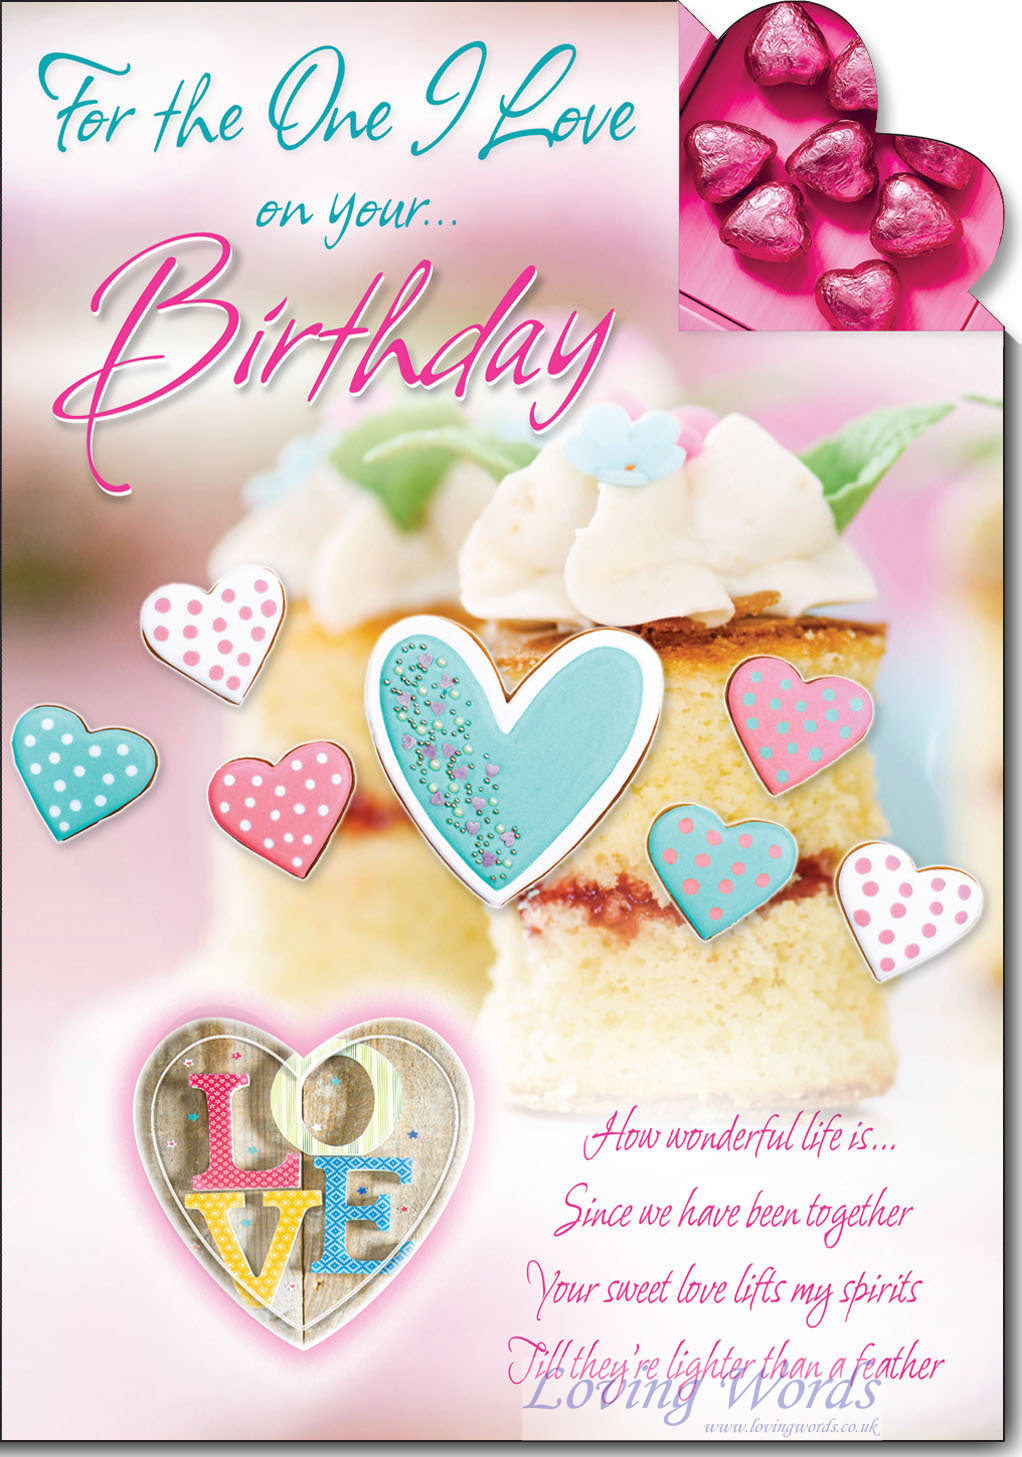 One I Love Birthday  Greeting Cards by Loving Words